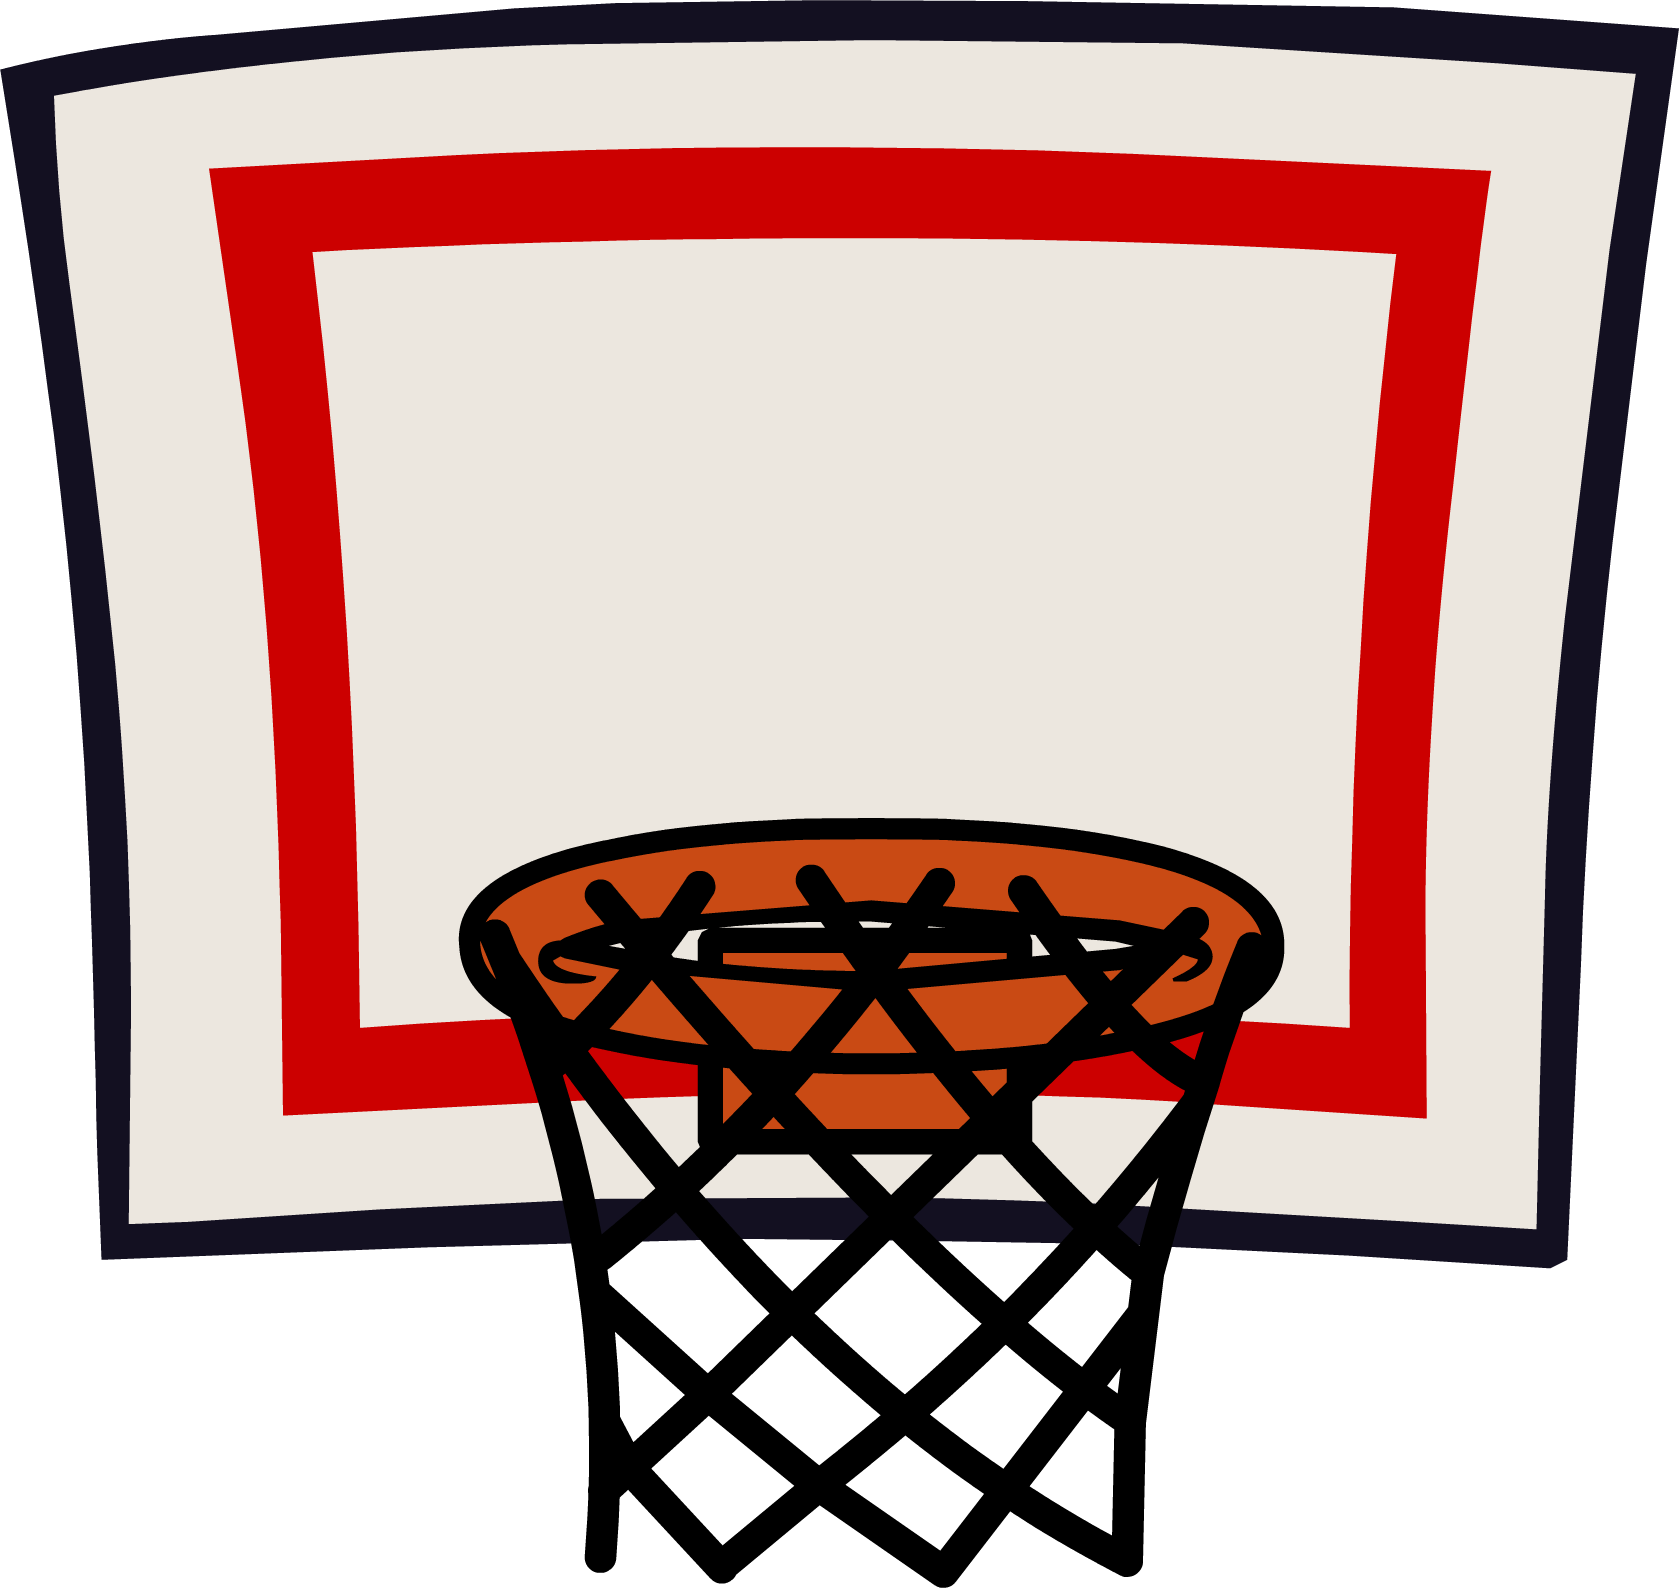 coloring pages : Free Basketball Coloring Pages To Print Best Of ... | 1588x1679